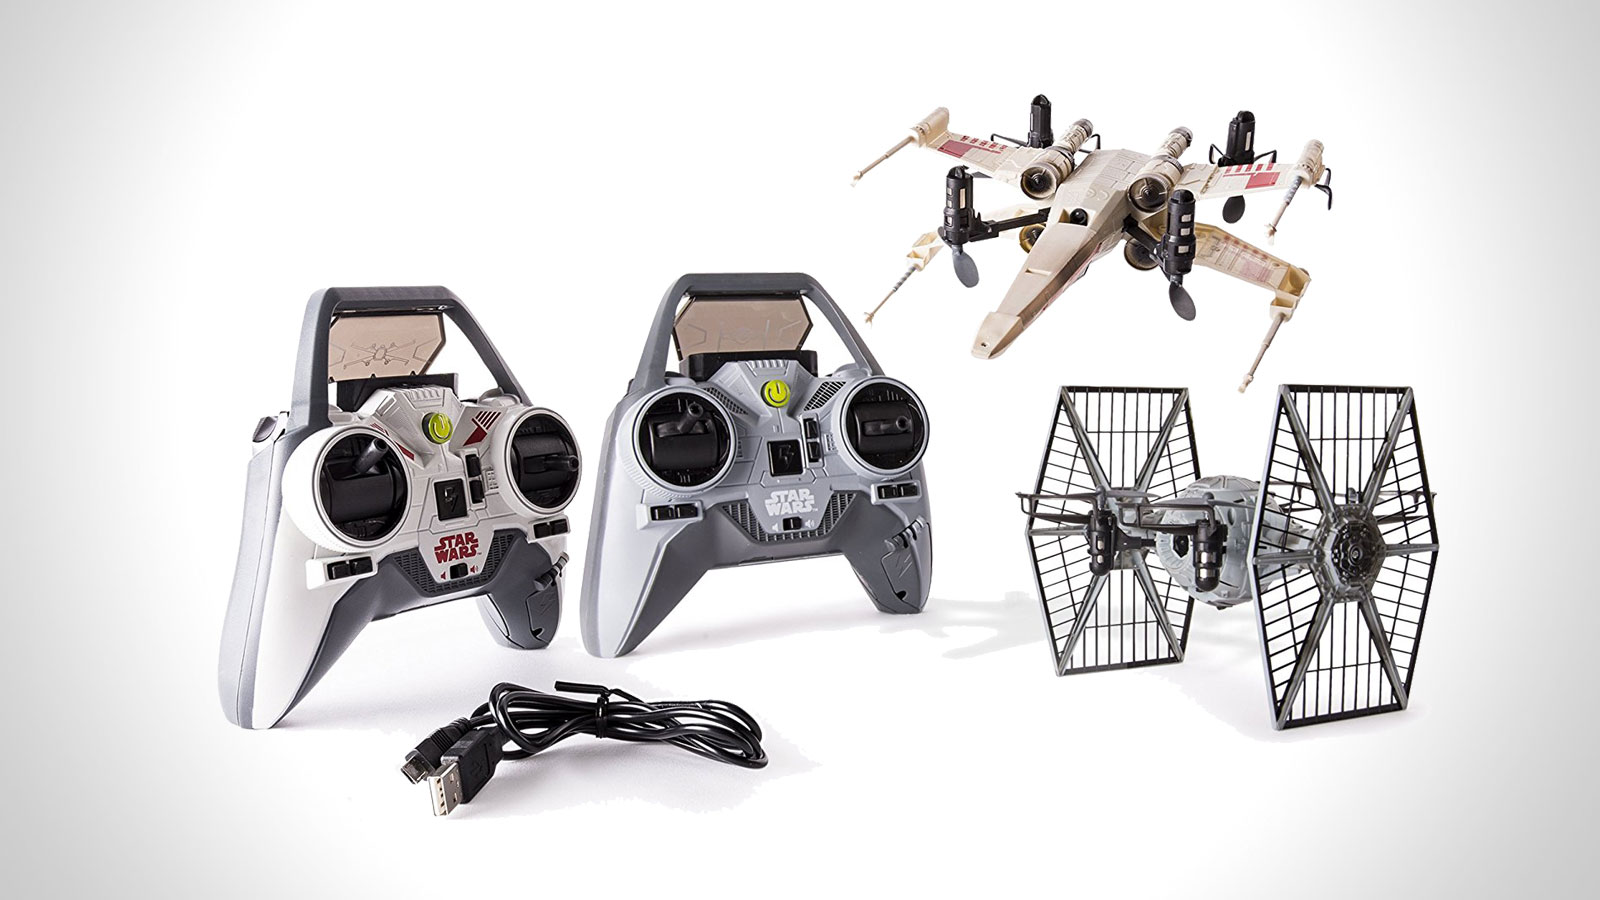 Star Wars X-wing vs. TIE Fighter Drone Battle Set   gifts for men   the best star wars gifts